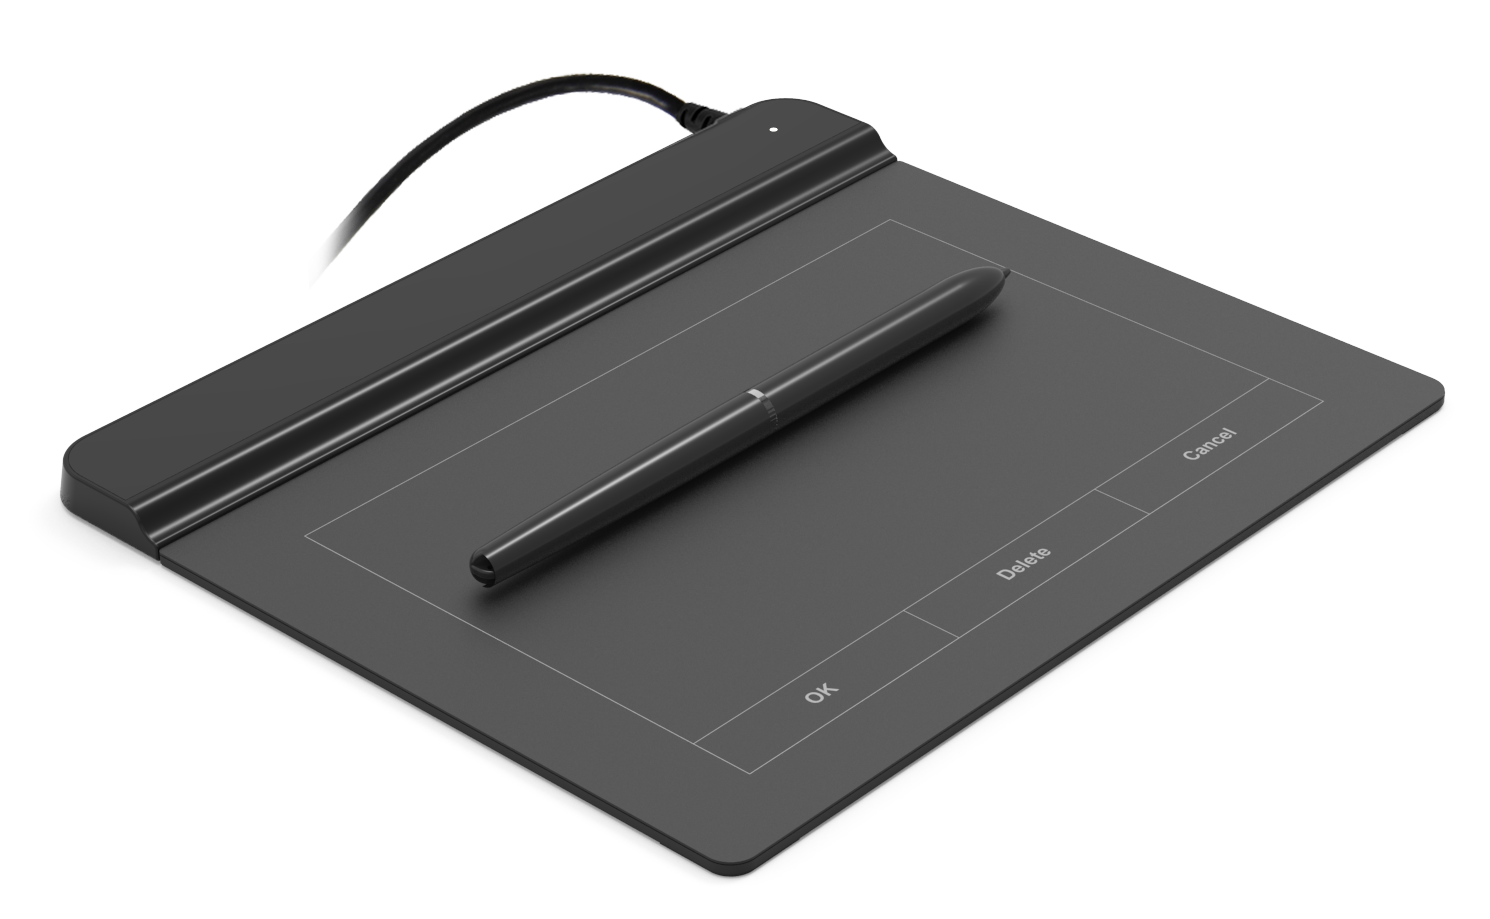 Ugee-High-quality Electronic Signature and Digital Pad For Signing Factory-3